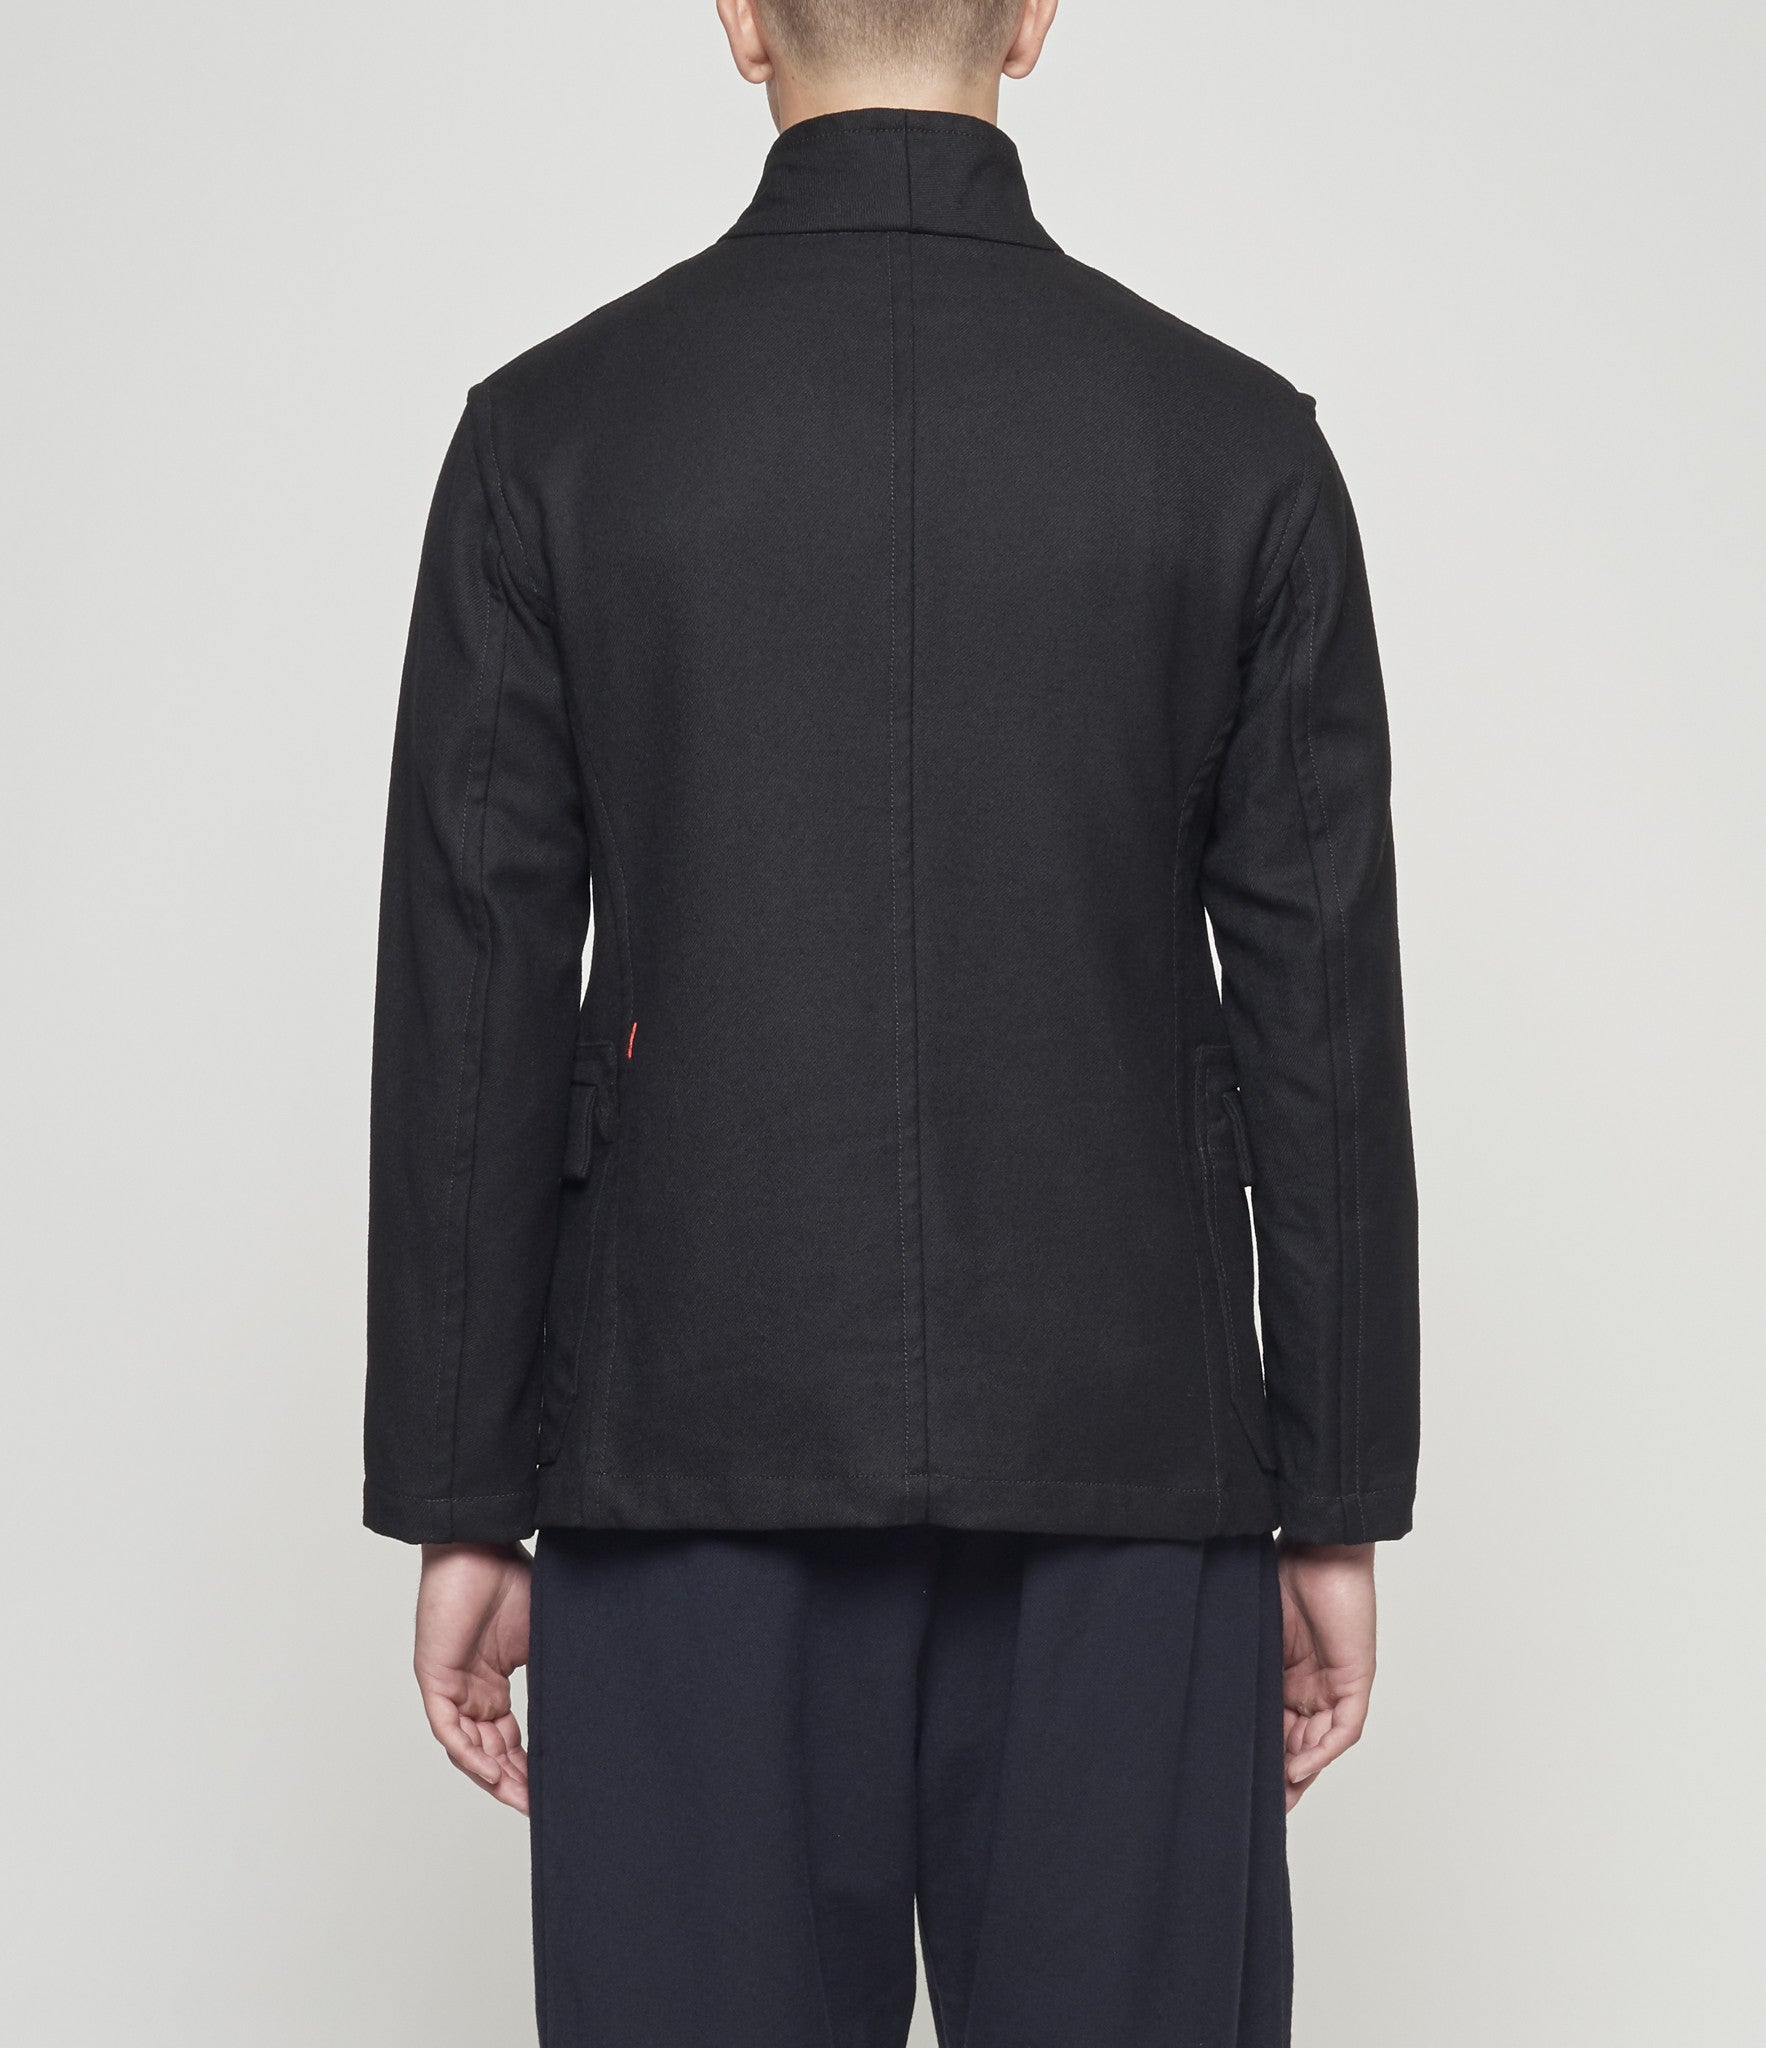 Casey Casey Heavy Wool Stand Collar Jacket